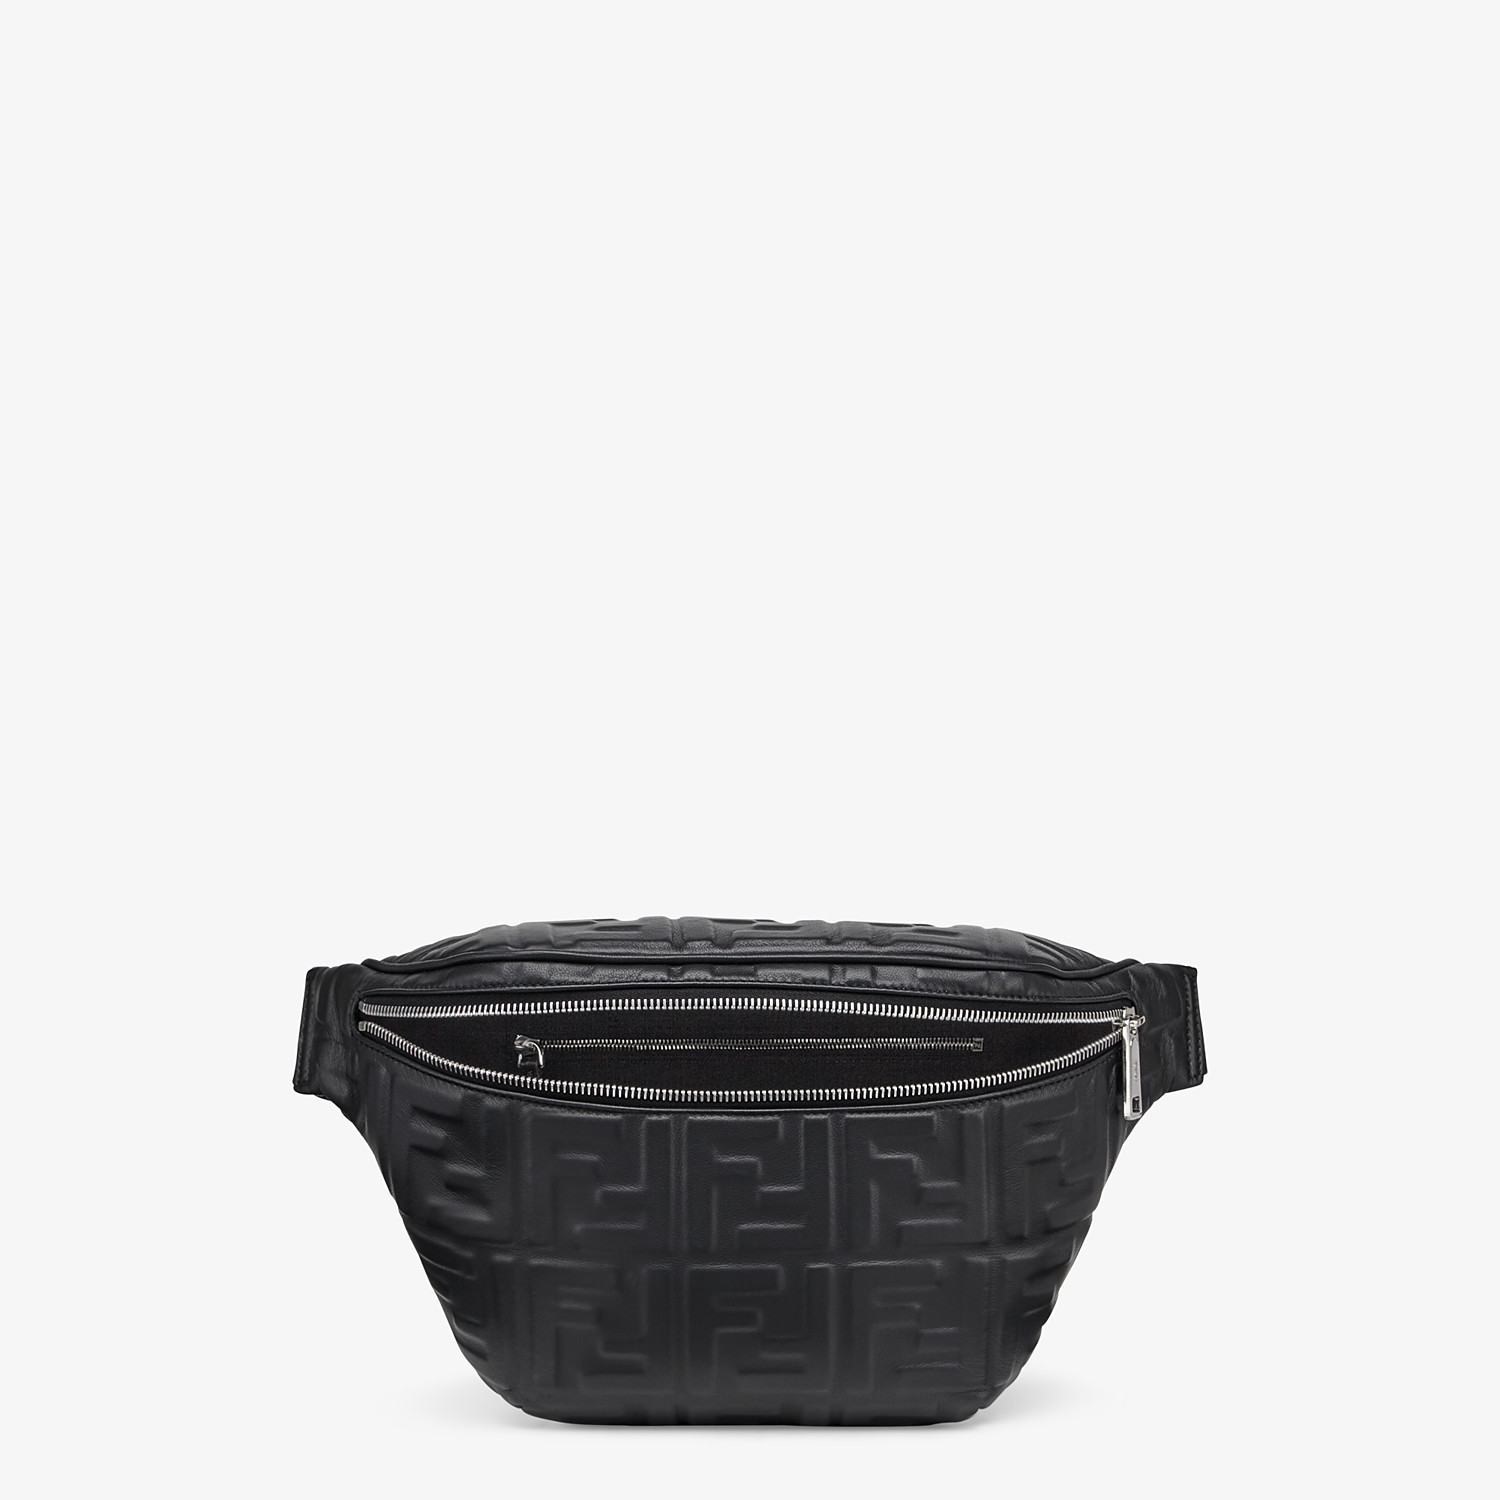 FENDI BELT BAG - Black nappa leather belt bag - view 4 detail